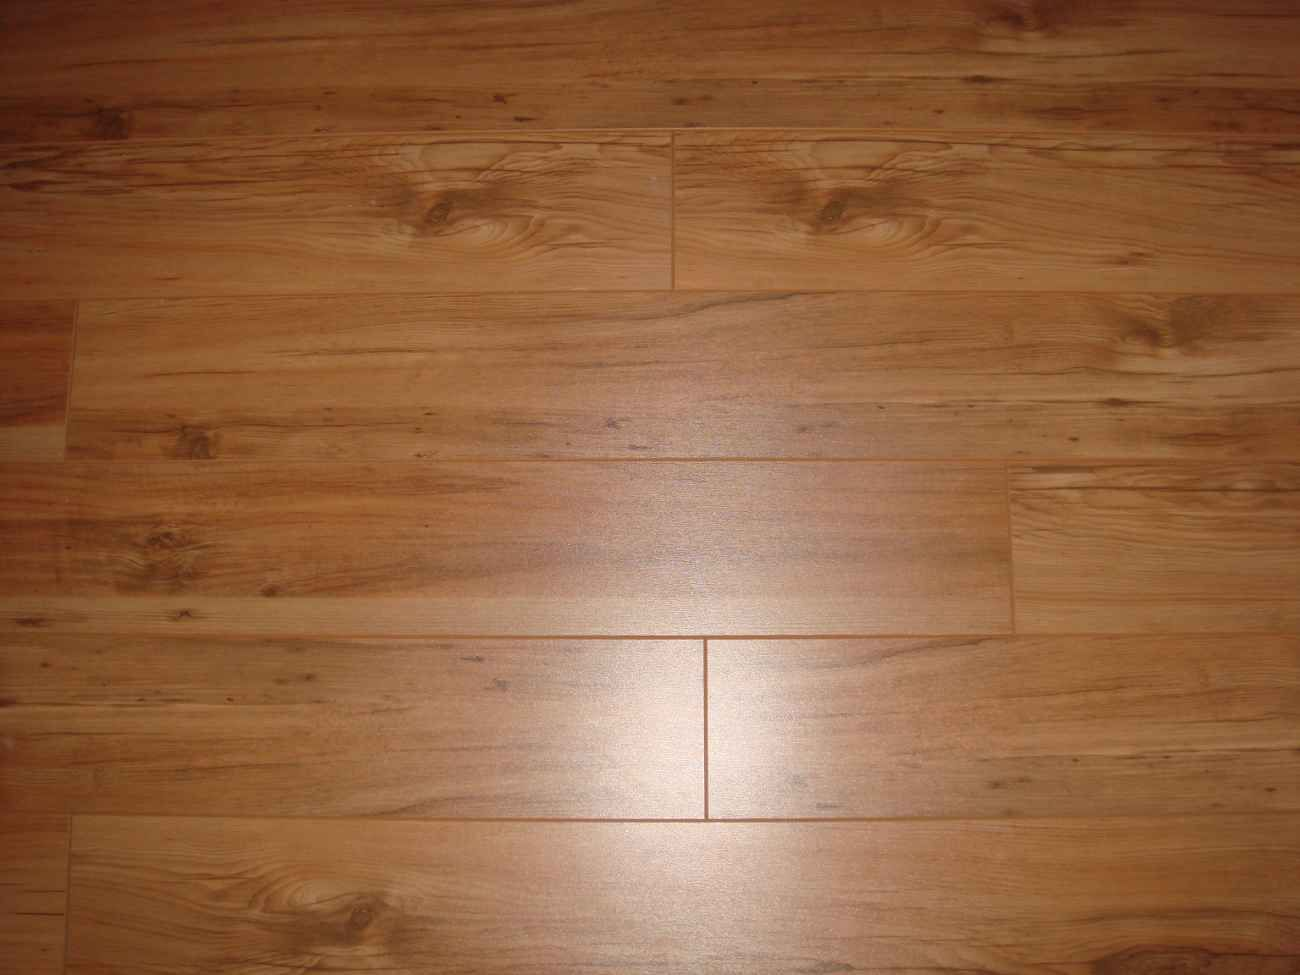 wood tile flooring. Ceramic Tile That Looks Like Wood | Wooden Floors Feel The Home Flooring O